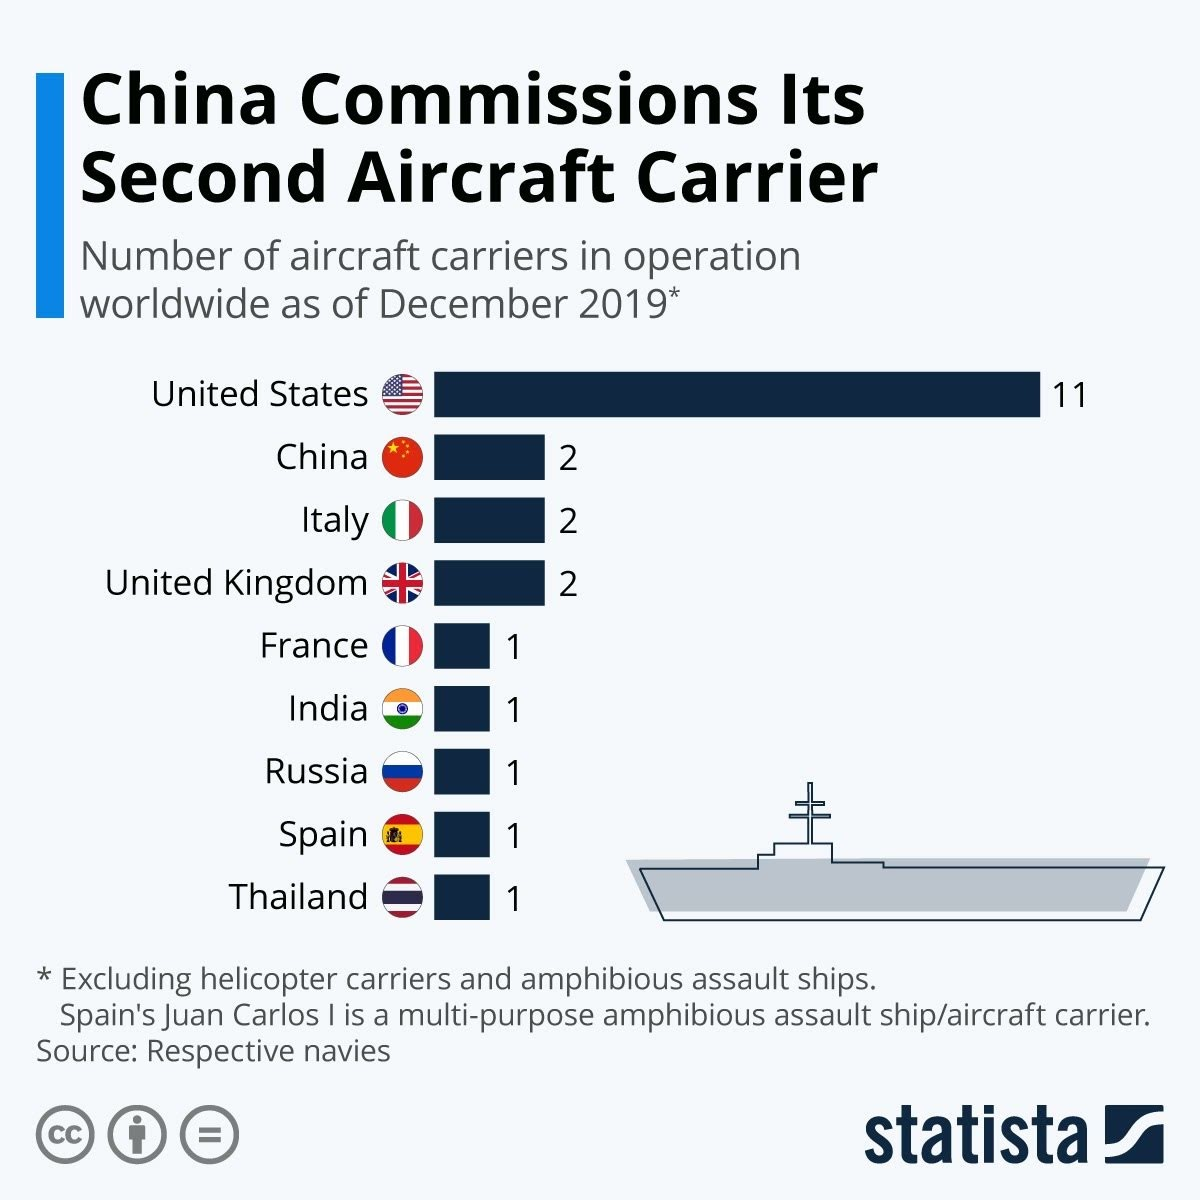 China Marks a Milestone by Commissioning Its Second Aircraft Carrier #infographic